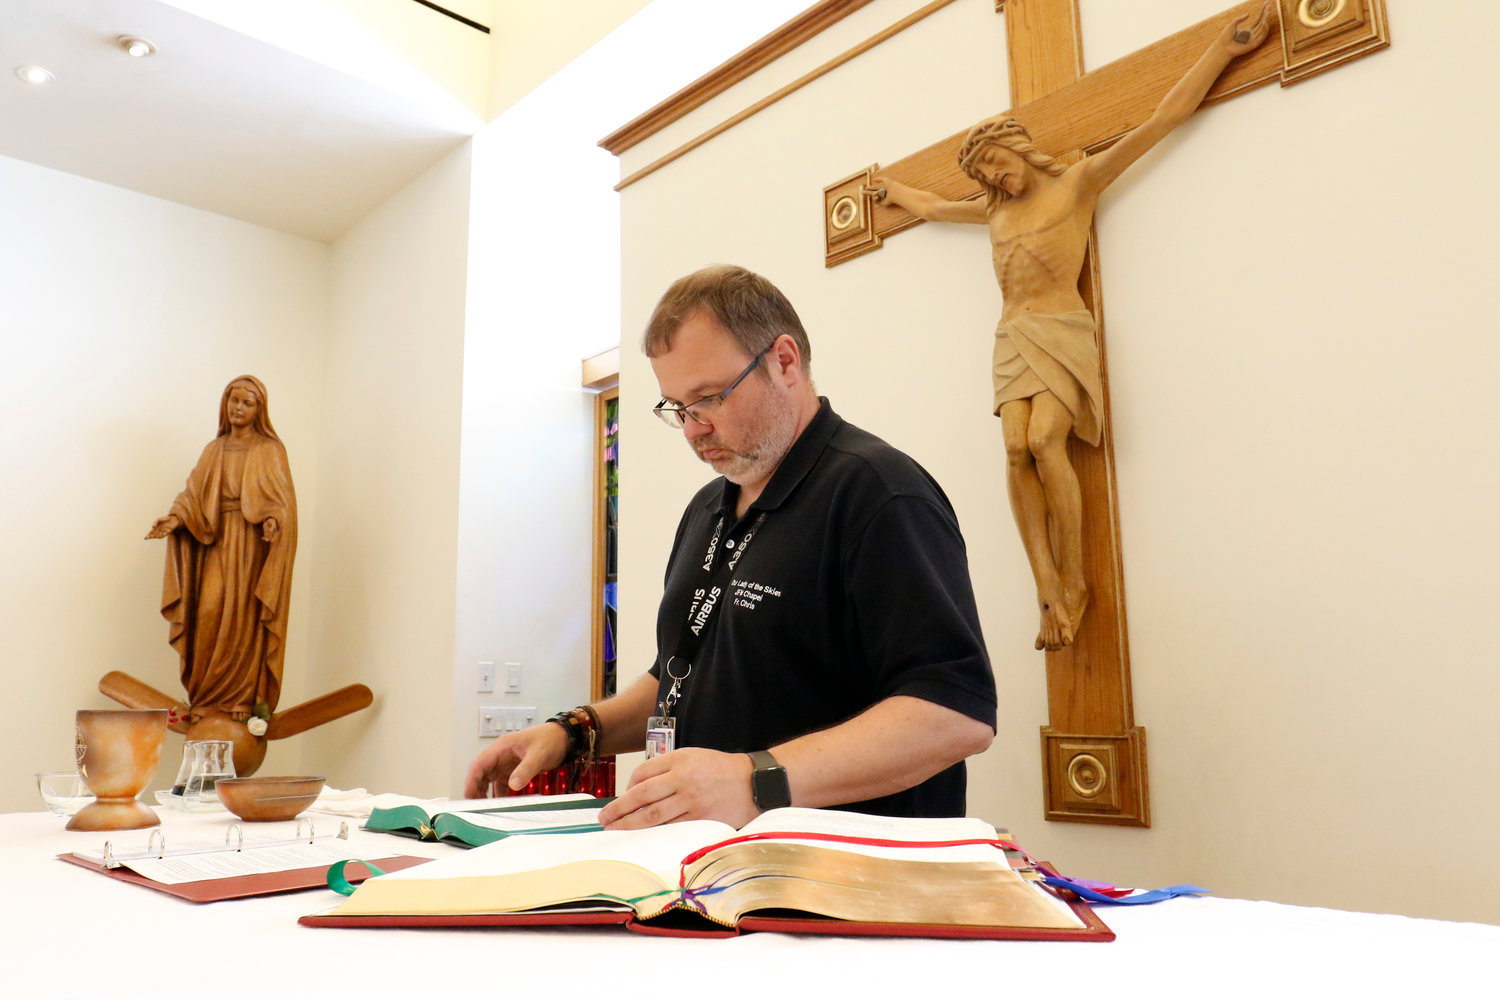 Father Chris Piasta, Catholic chaplain at John F. Kennedy International and LaGuardia airports in the Queens borough of New York, prepares the altar prior to celebrating Mass at JFK's Our Lady of the Skies Chapel Aug. 5, 2019.